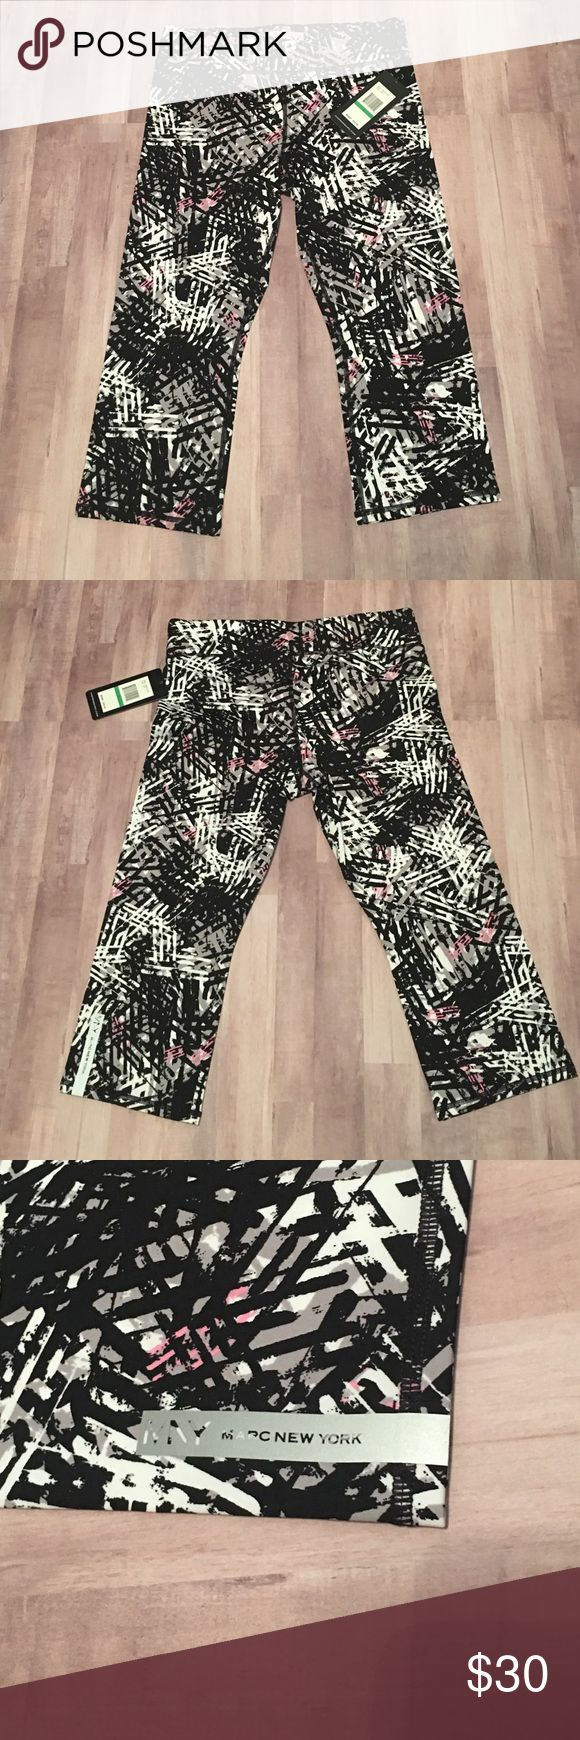 "NWT Andrew Marc Performance Crop Leggings Beautiful Crop Leggings. Great for SoulCycle! Approximately 27"" in length. Andrew Marc Pants Leggings"